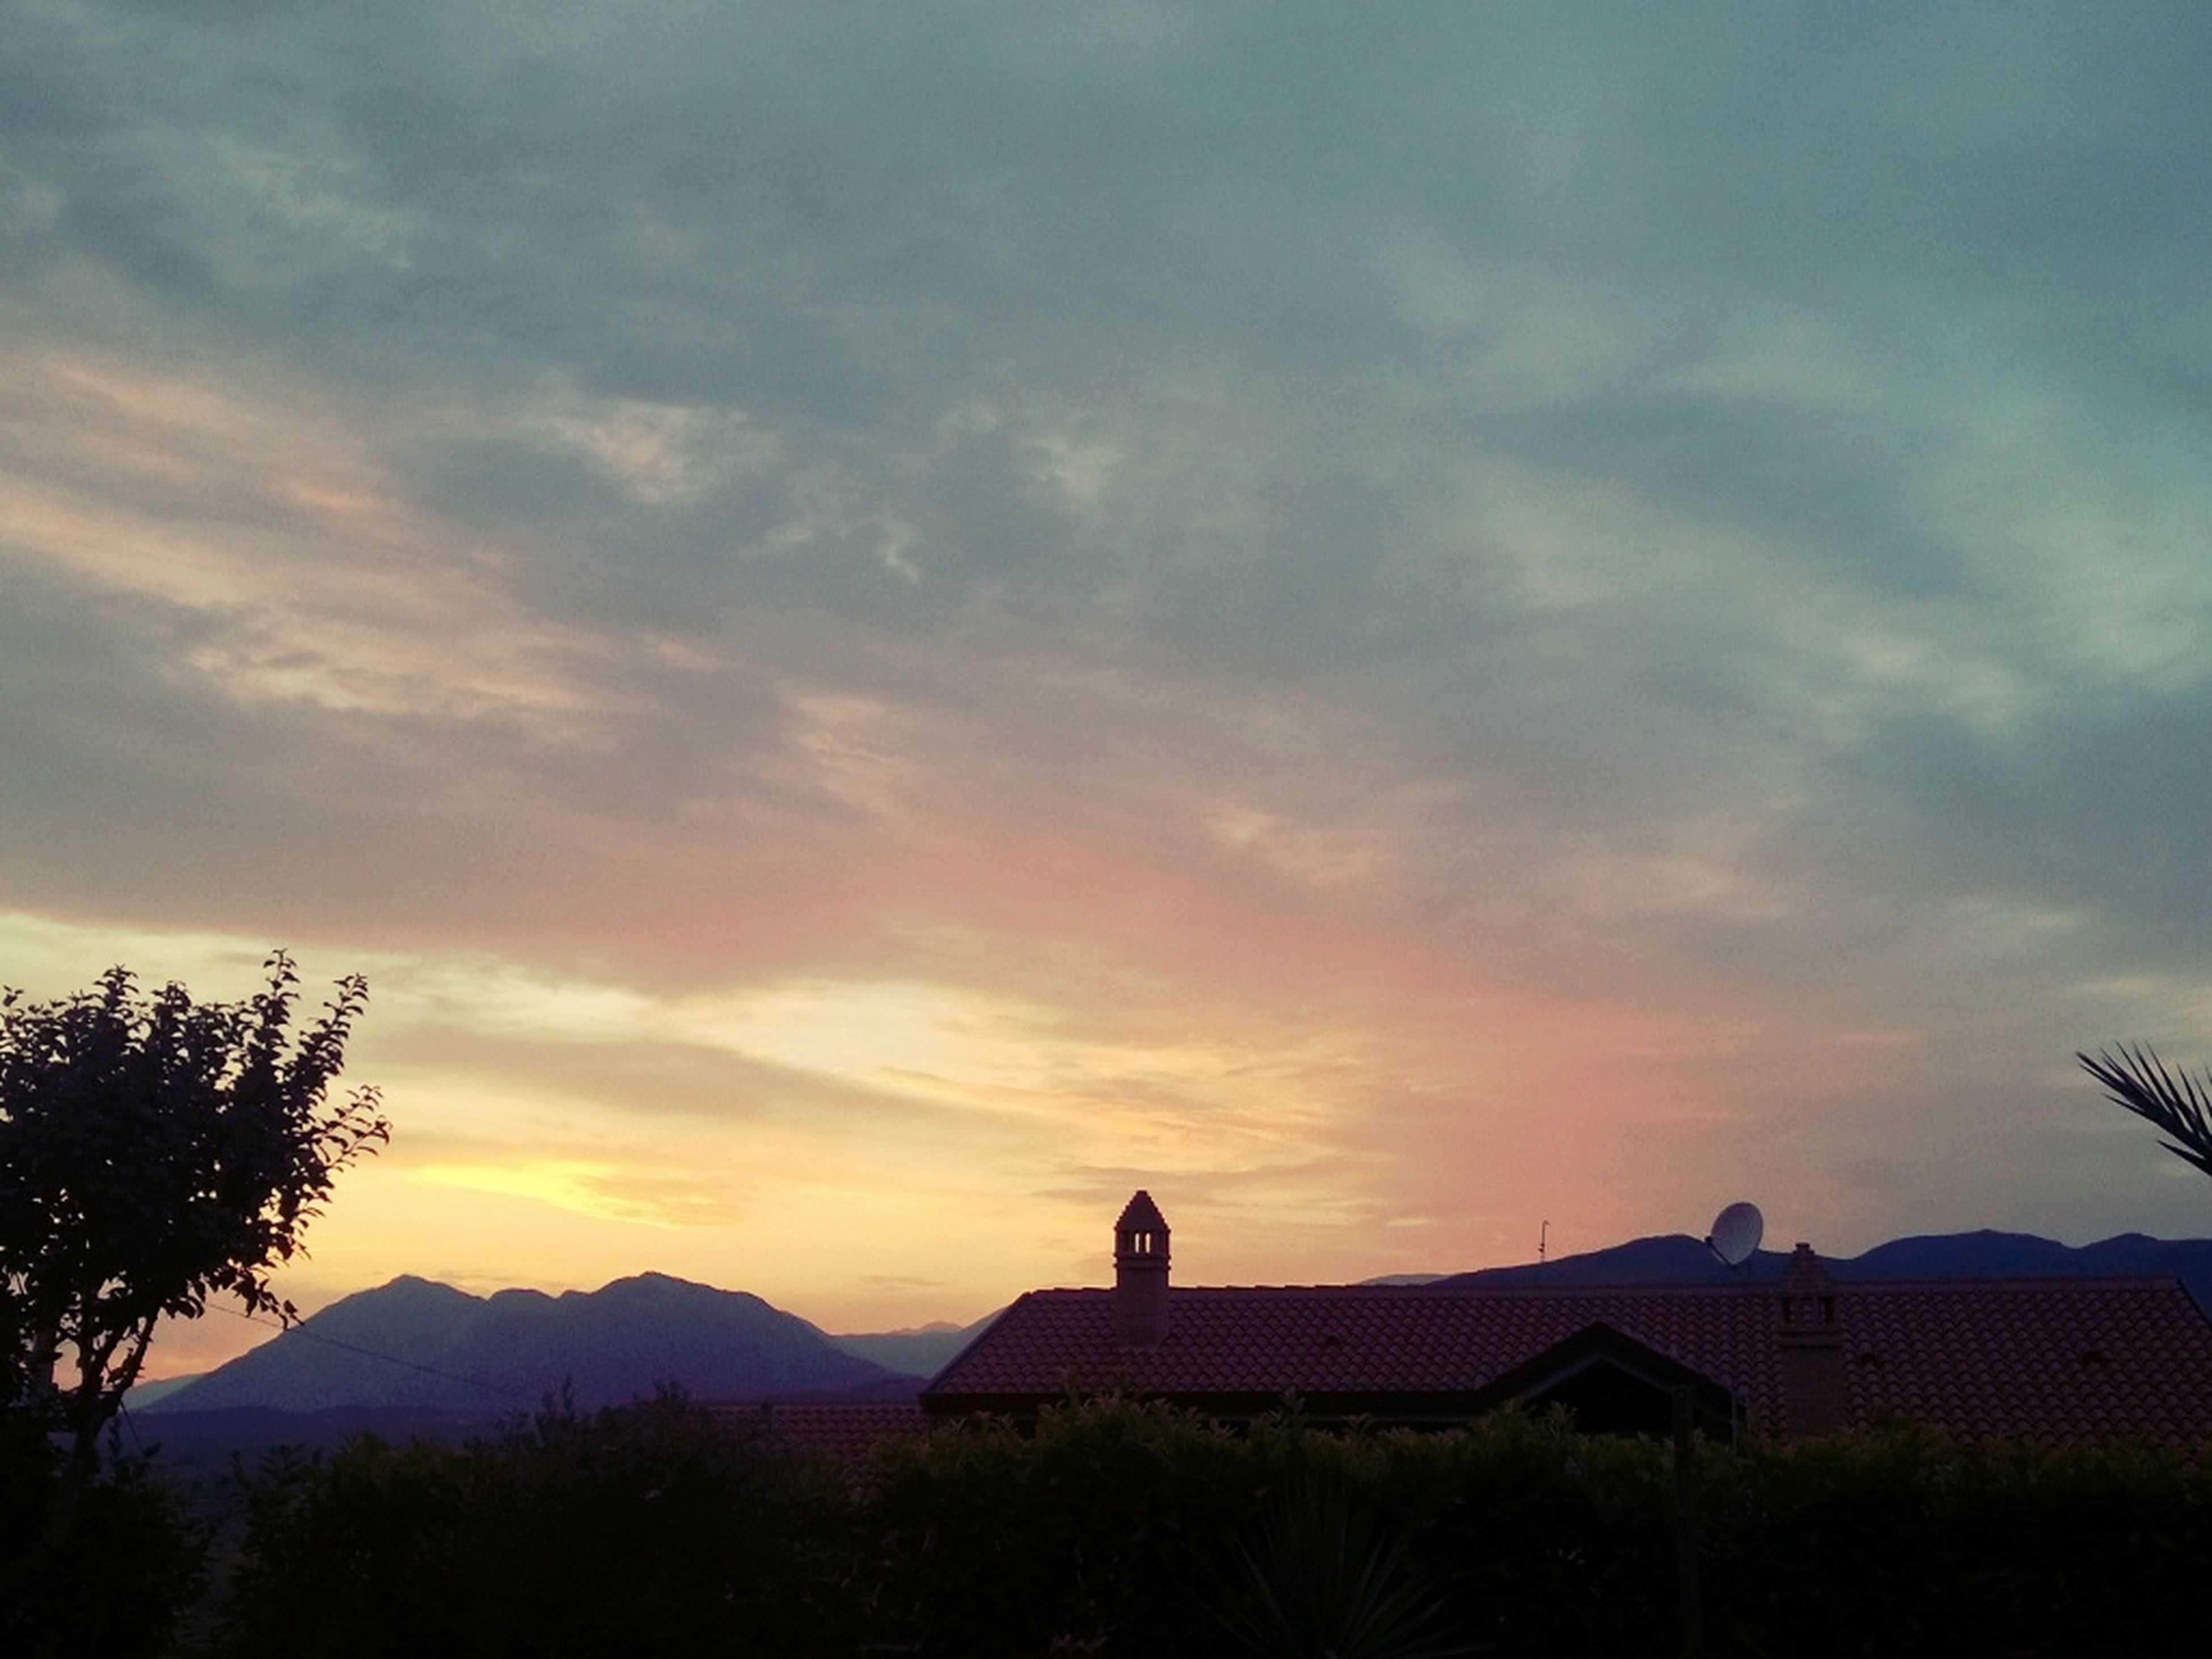 sunset, silhouette, sky, built structure, architecture, cloud - sky, building exterior, tree, beauty in nature, scenics, orange color, nature, cloudy, cloud, tranquility, tranquil scene, house, mountain, low angle view, idyllic